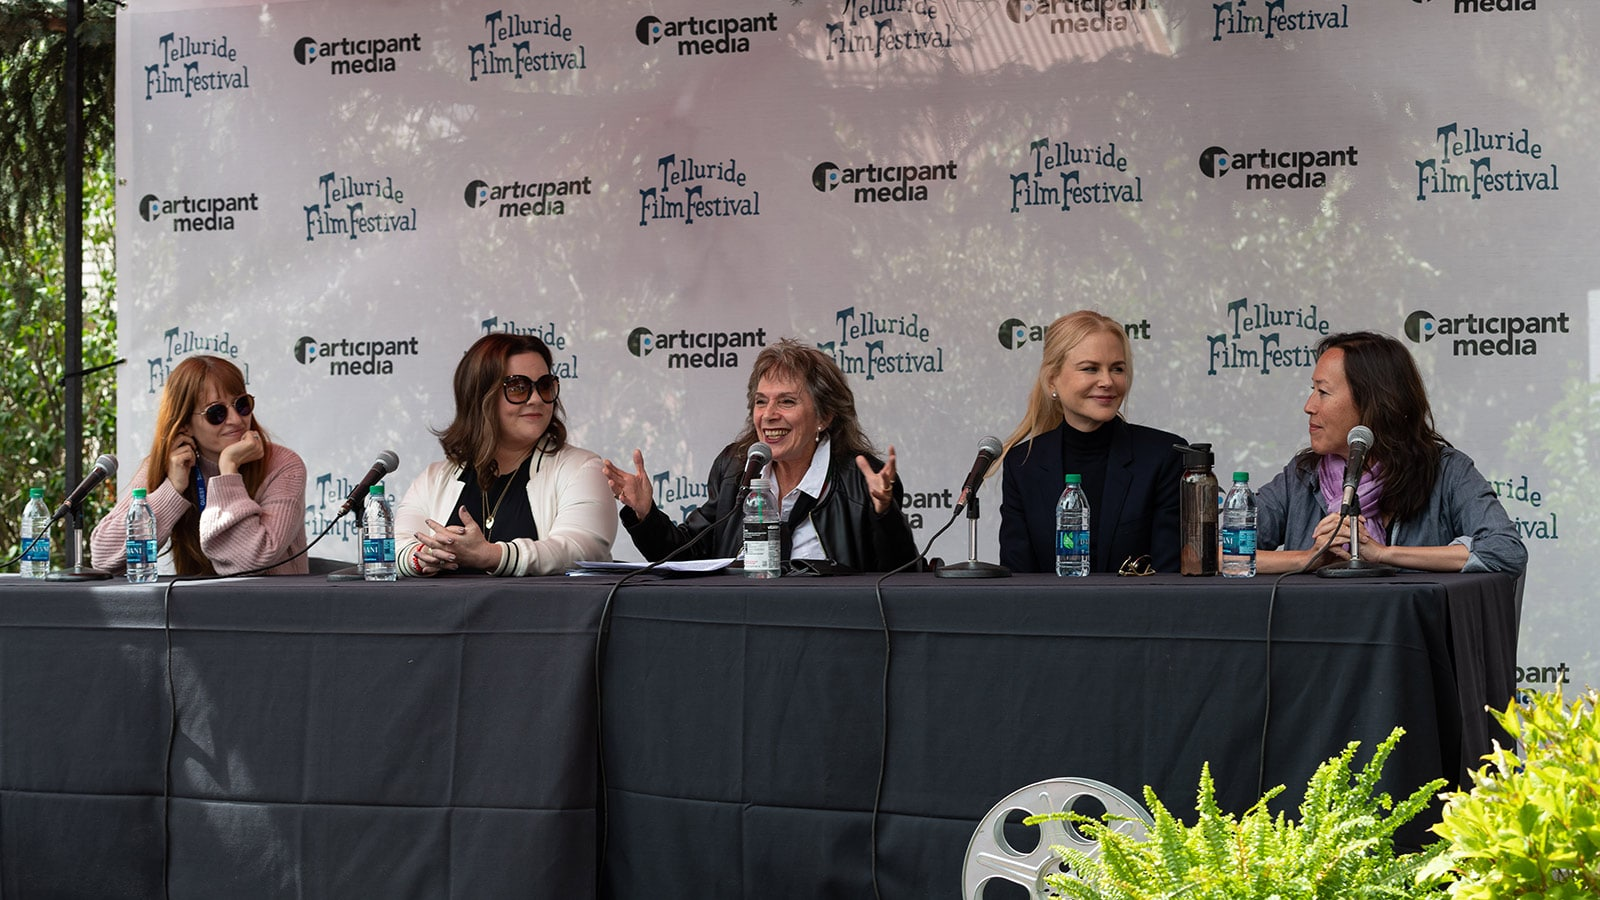 (L-R) Marielle Heller, Melissa McCarthy, Annette Insdorf, Nicole Kidman, and Karyn Kusama at Telluride panel discussion.